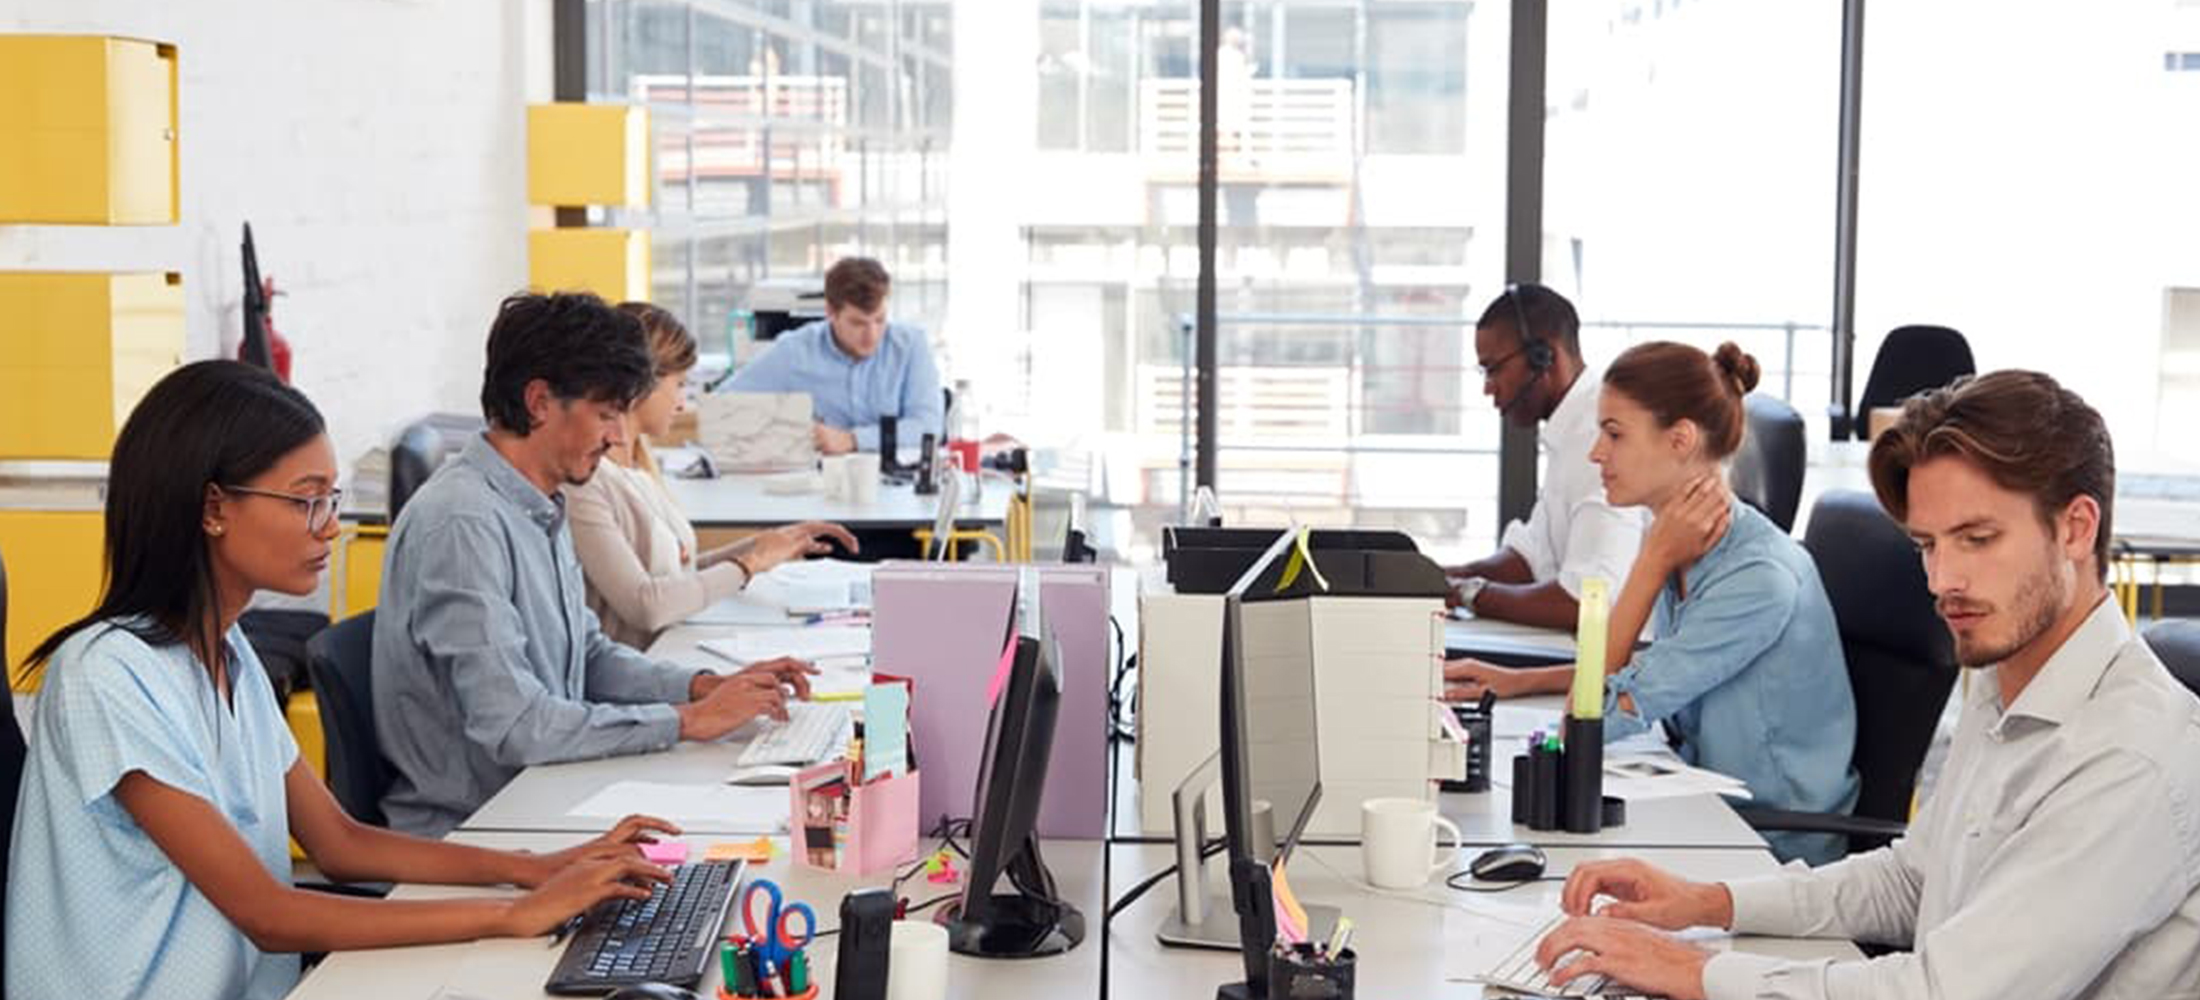 workers in an open plan work space